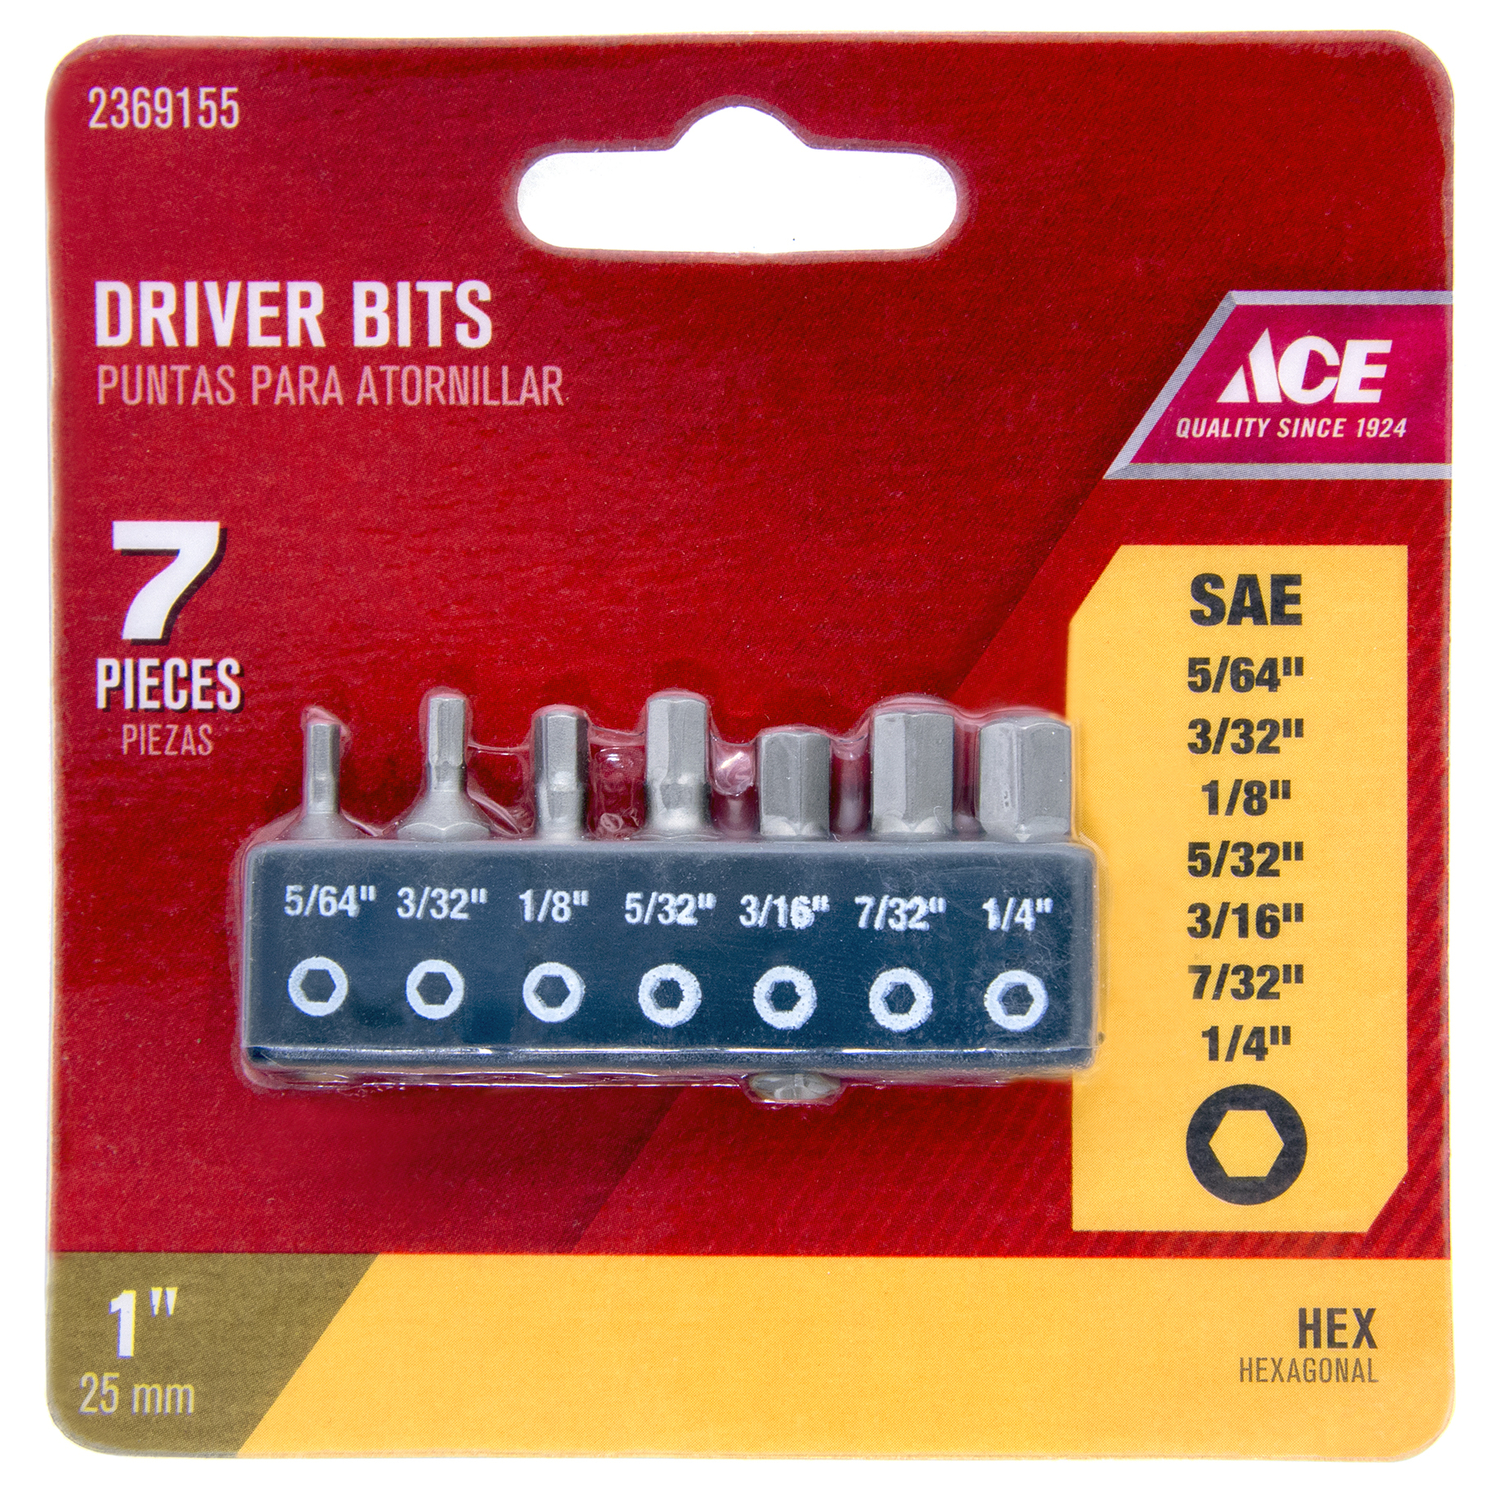 Ace  Hex  Multi Size in.  x 1 in. L 1/4 in. S2 Tool Steel  7 pc. Insert Bit Set  Hex Shank